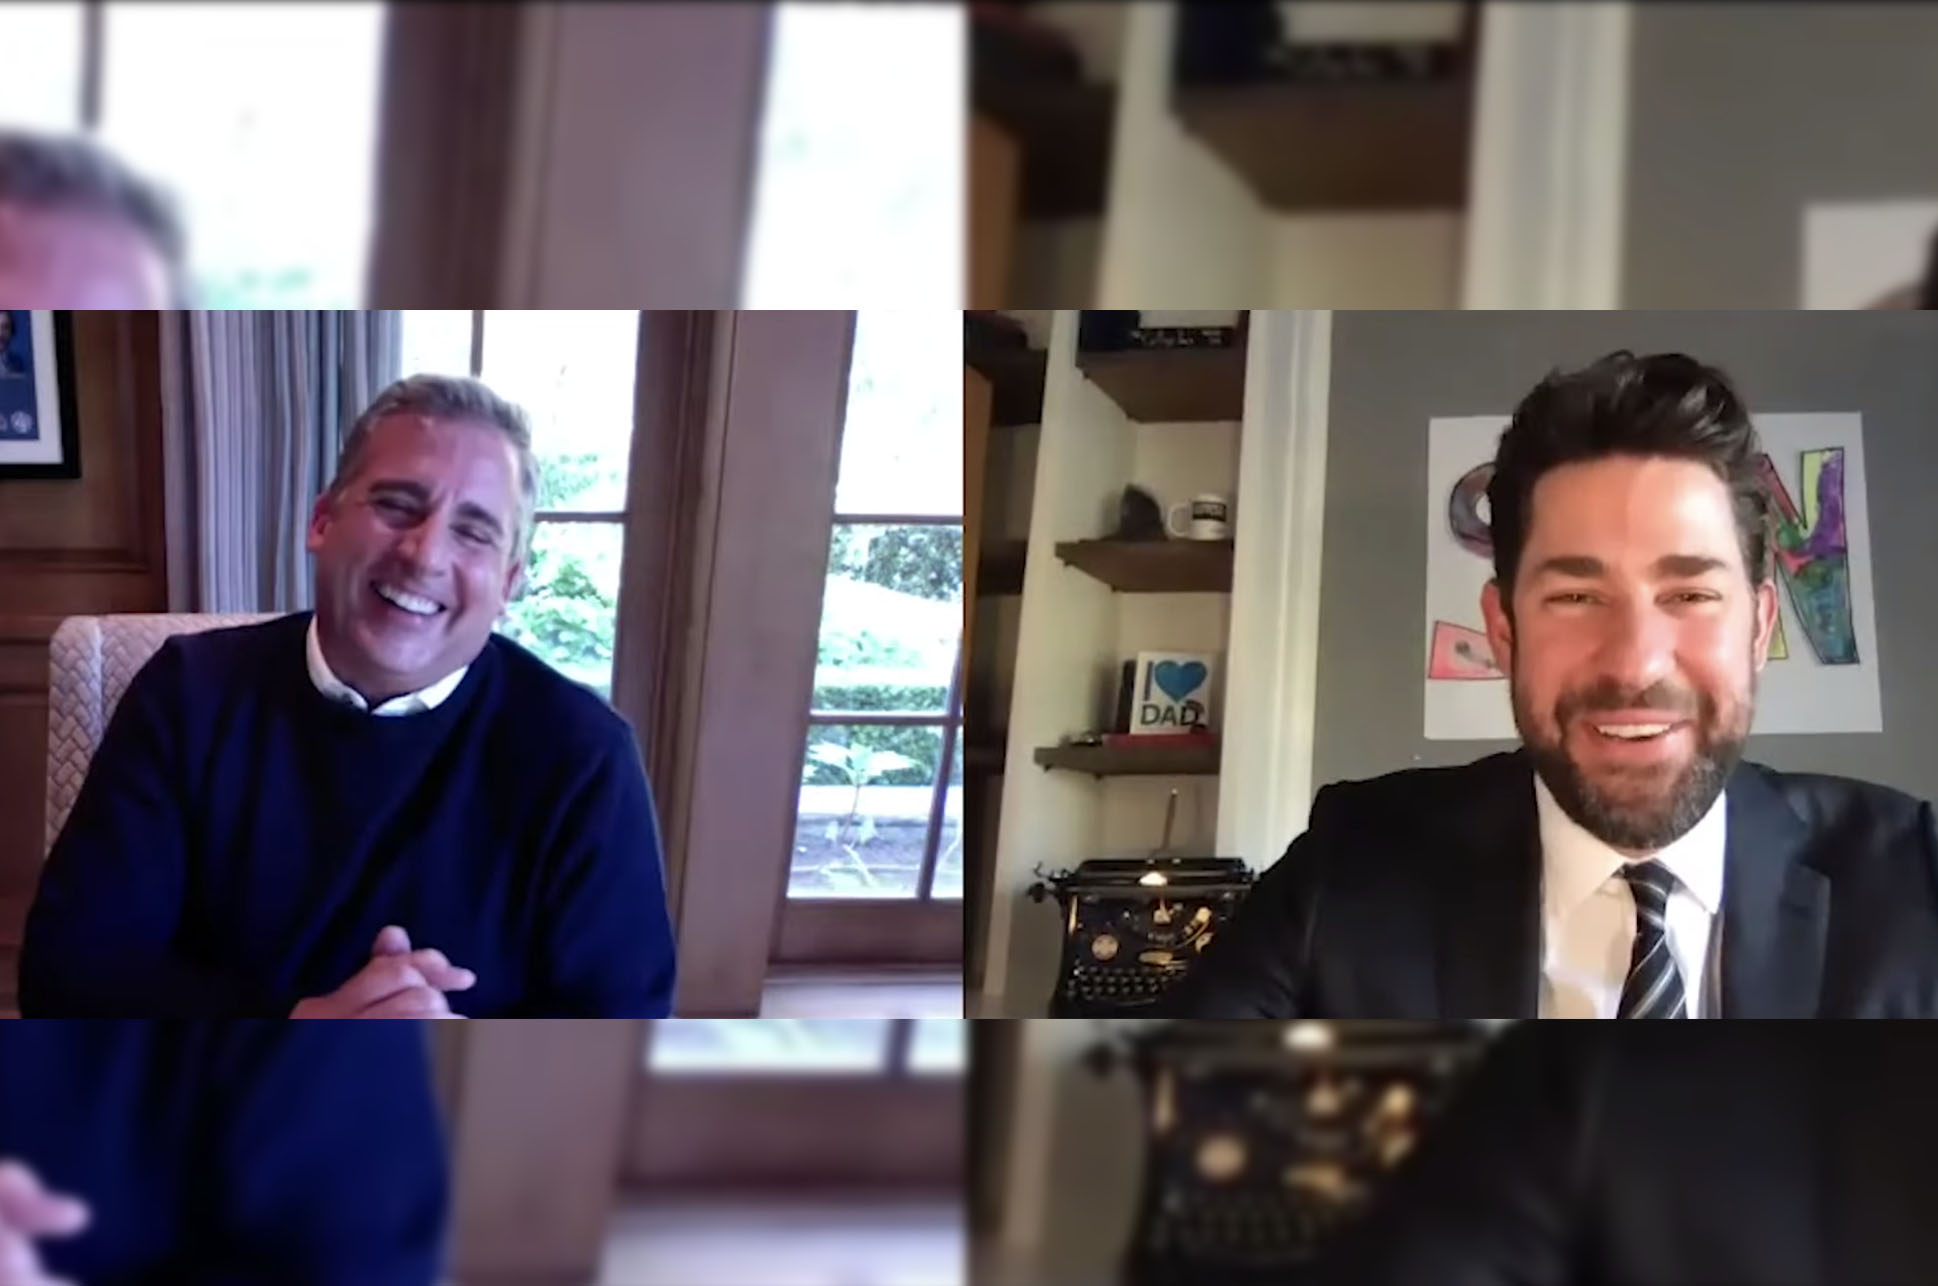 Got Monday Blues? Here's Steve Carell & John Krasinski Reliving 'The Office' Days